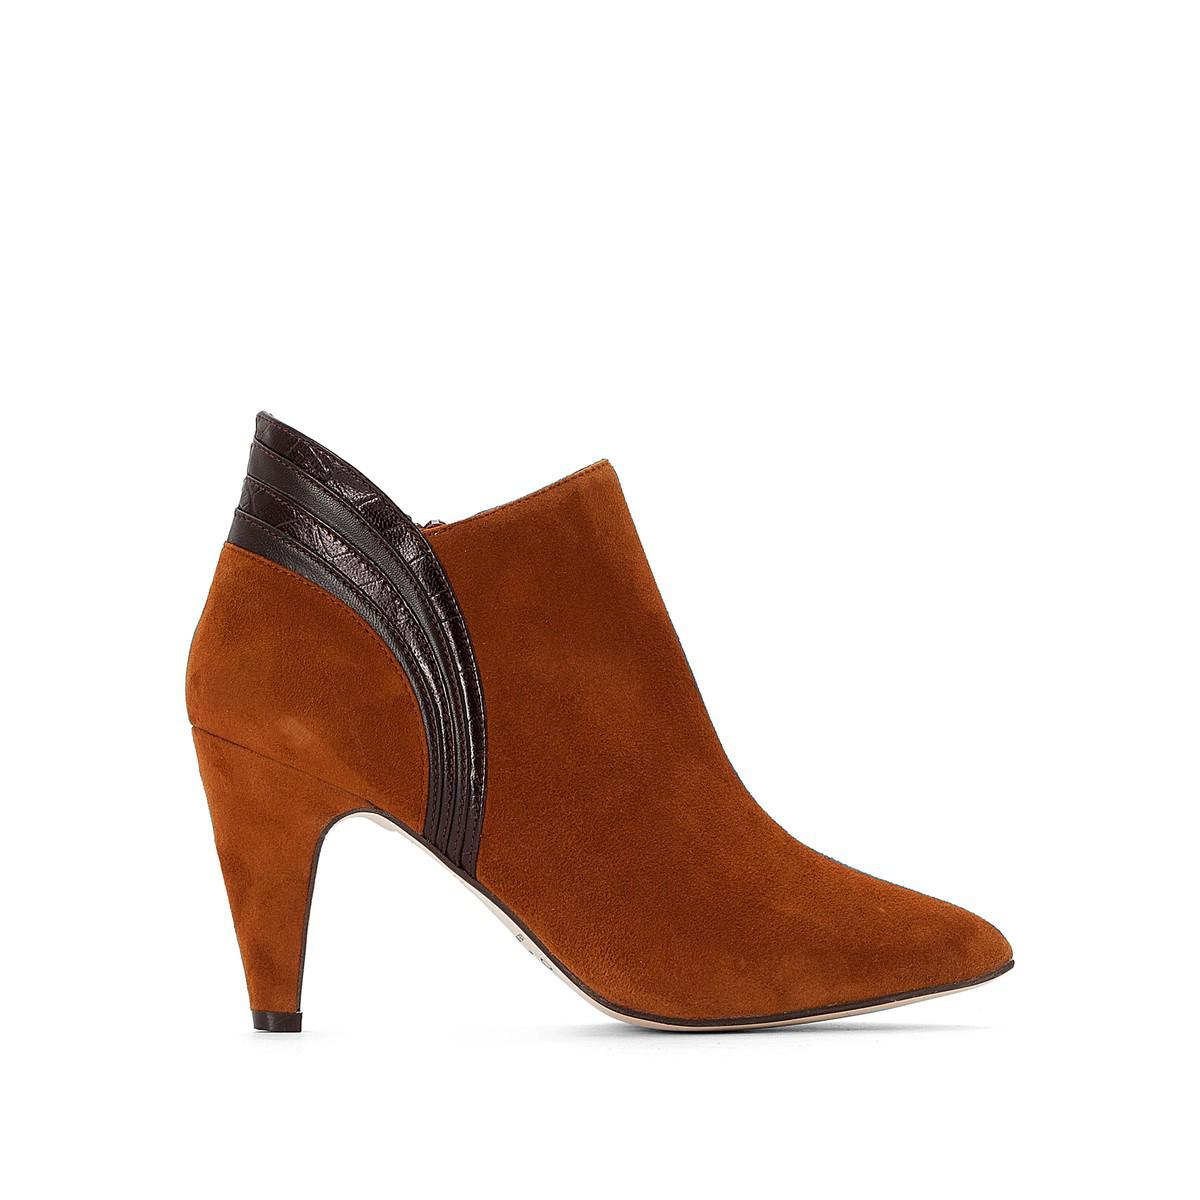 ed7e6dadcc6 Lyst - Jonak Suede Ankle Boots in Brown